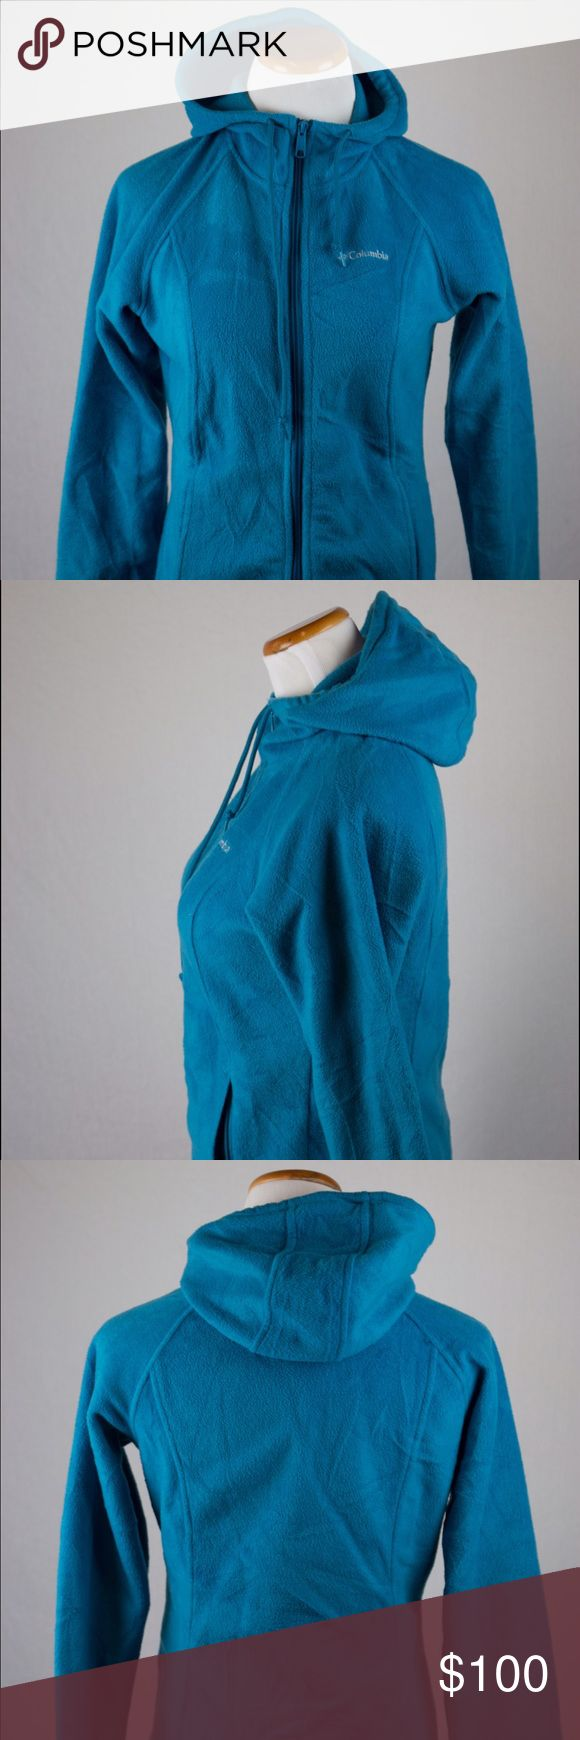 Columbia Women's Hooded Zip Up Jacket Female small light blue Columbia hooded zip up jacket. This Columbia jacket was hand picked and professionally cleaned before selling it to you! SKU in warehouse is # 676. Columbia Jackets & Coats